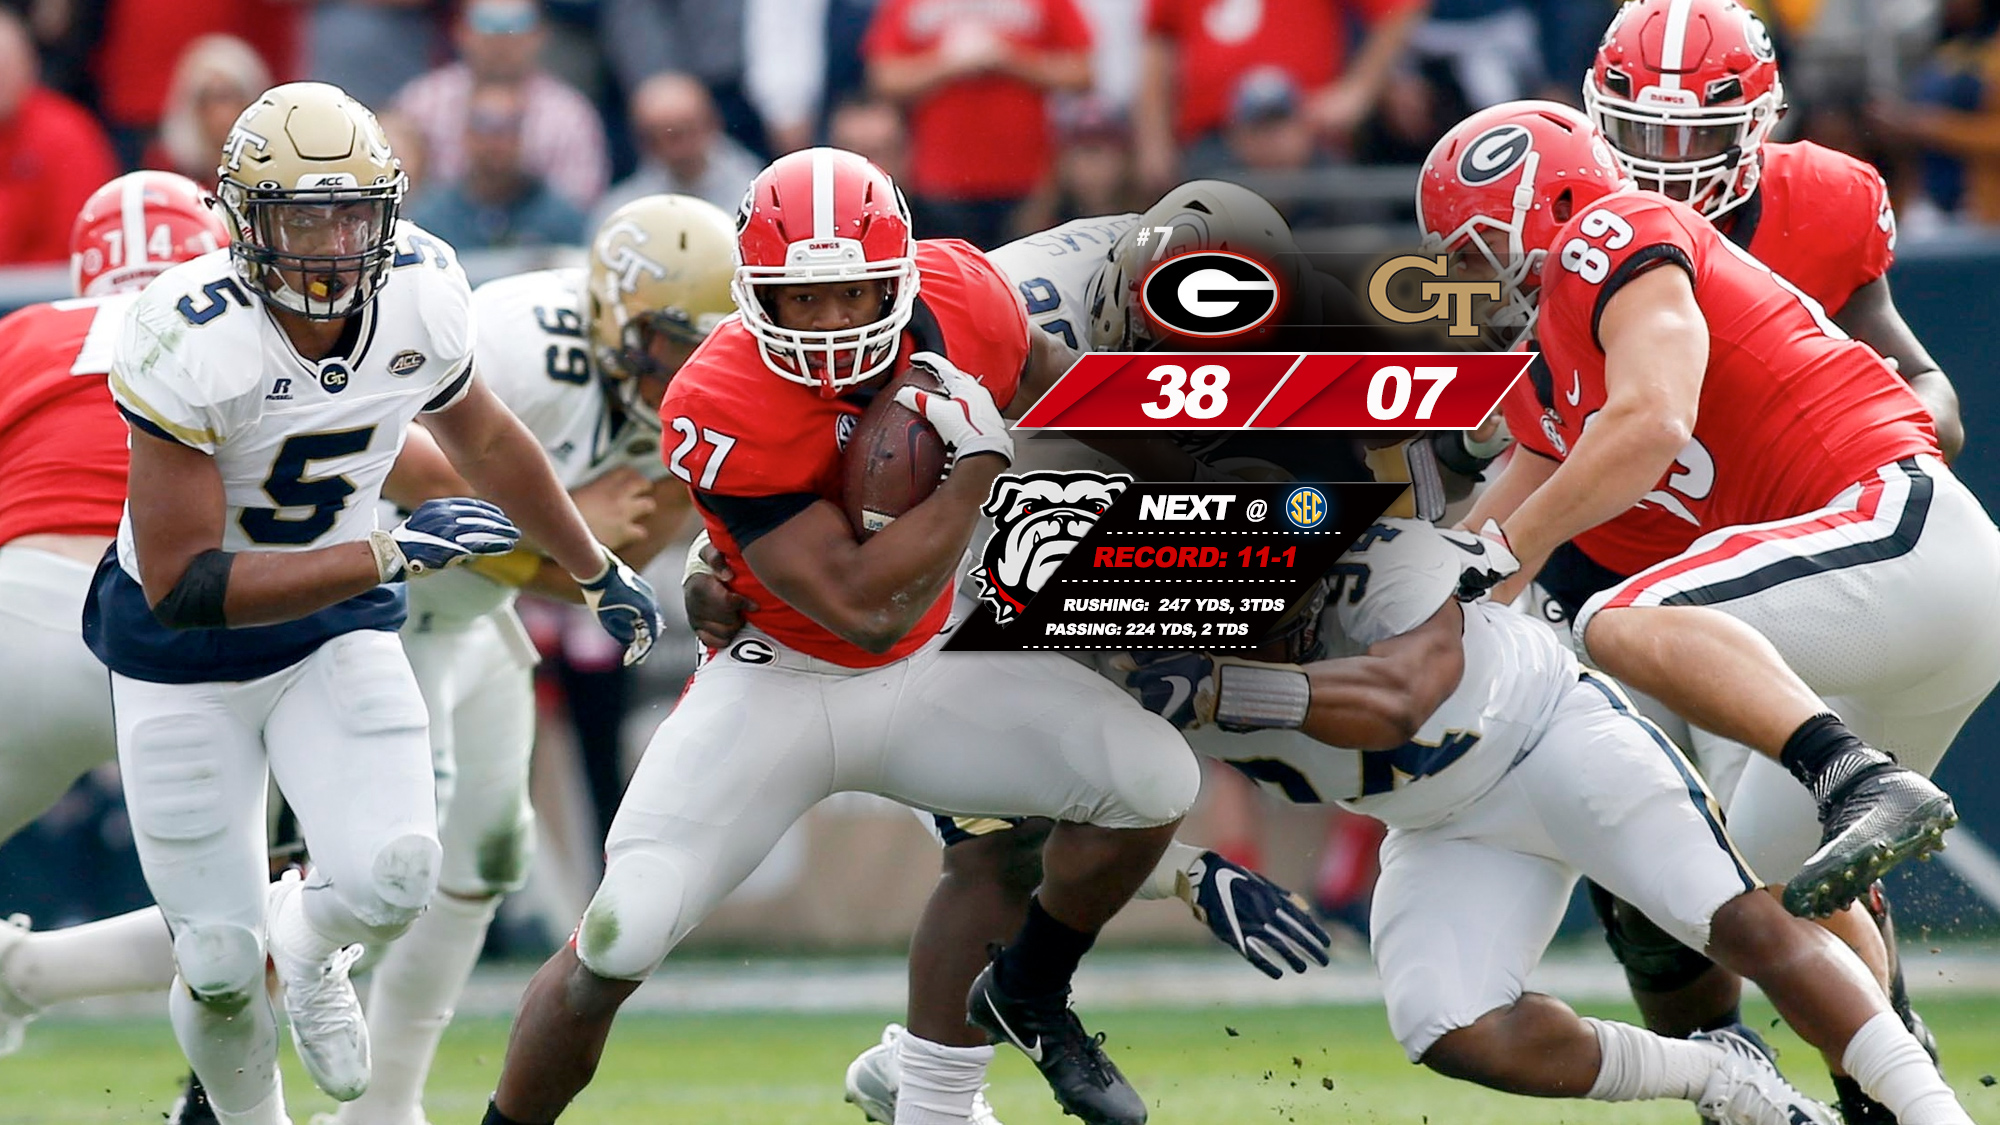 401560be812 Bulldogs Roll Over Yellow Jackets, 38-7 - University of Georgia ...